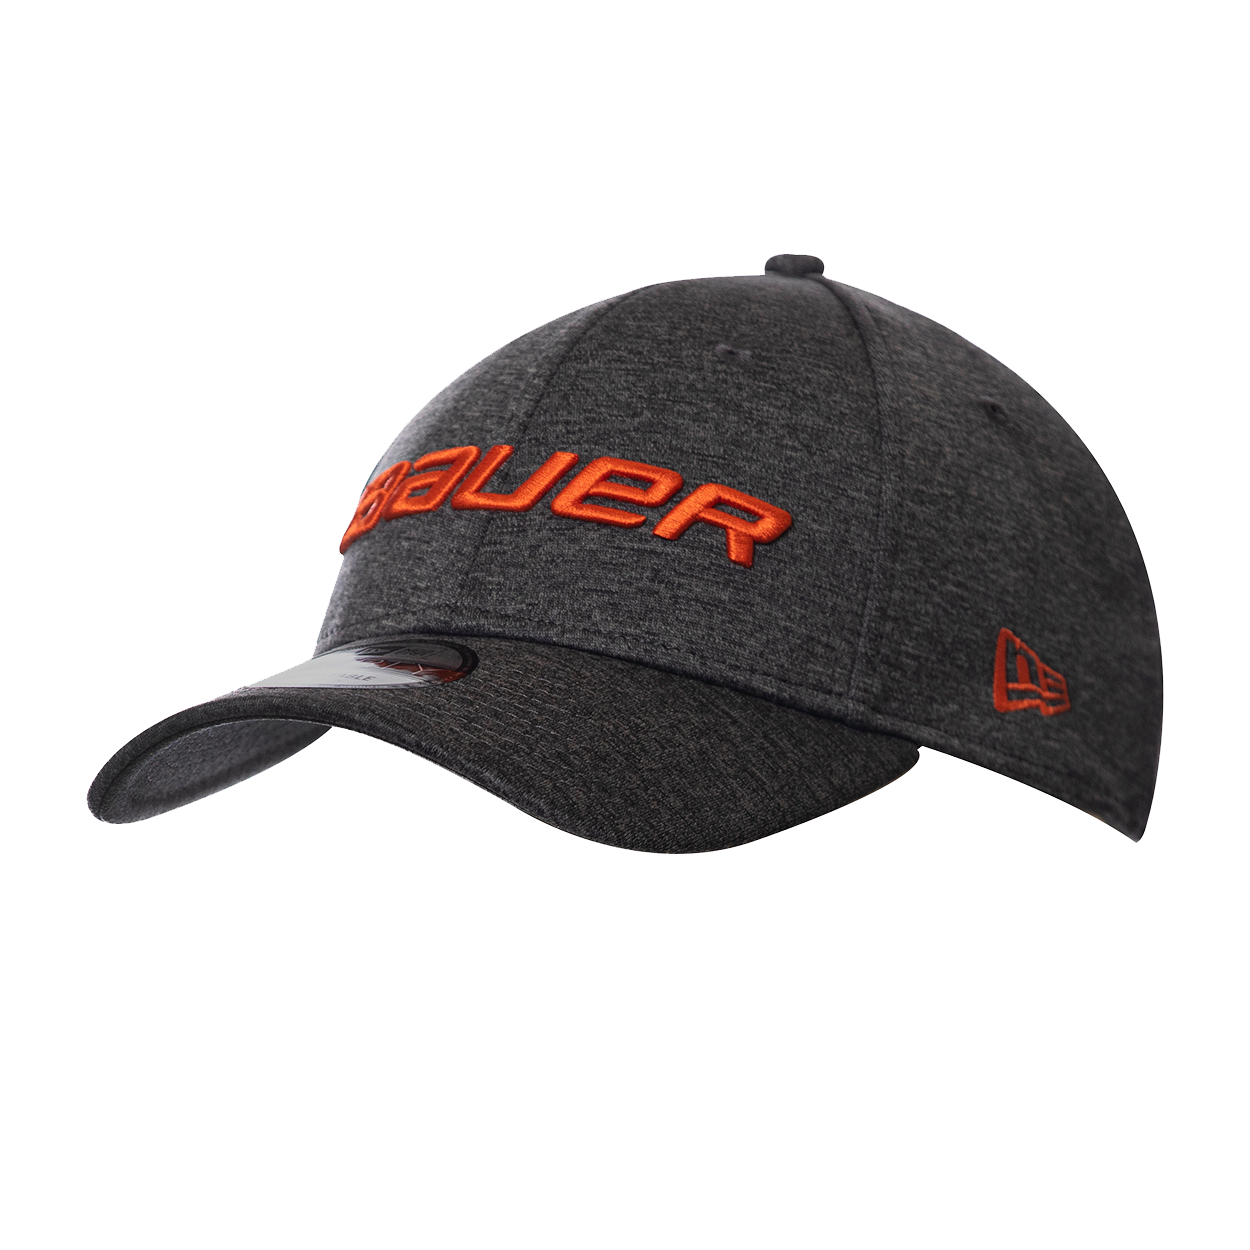 New Era 940 Color Pop Cap Senior - Orange,,moyen